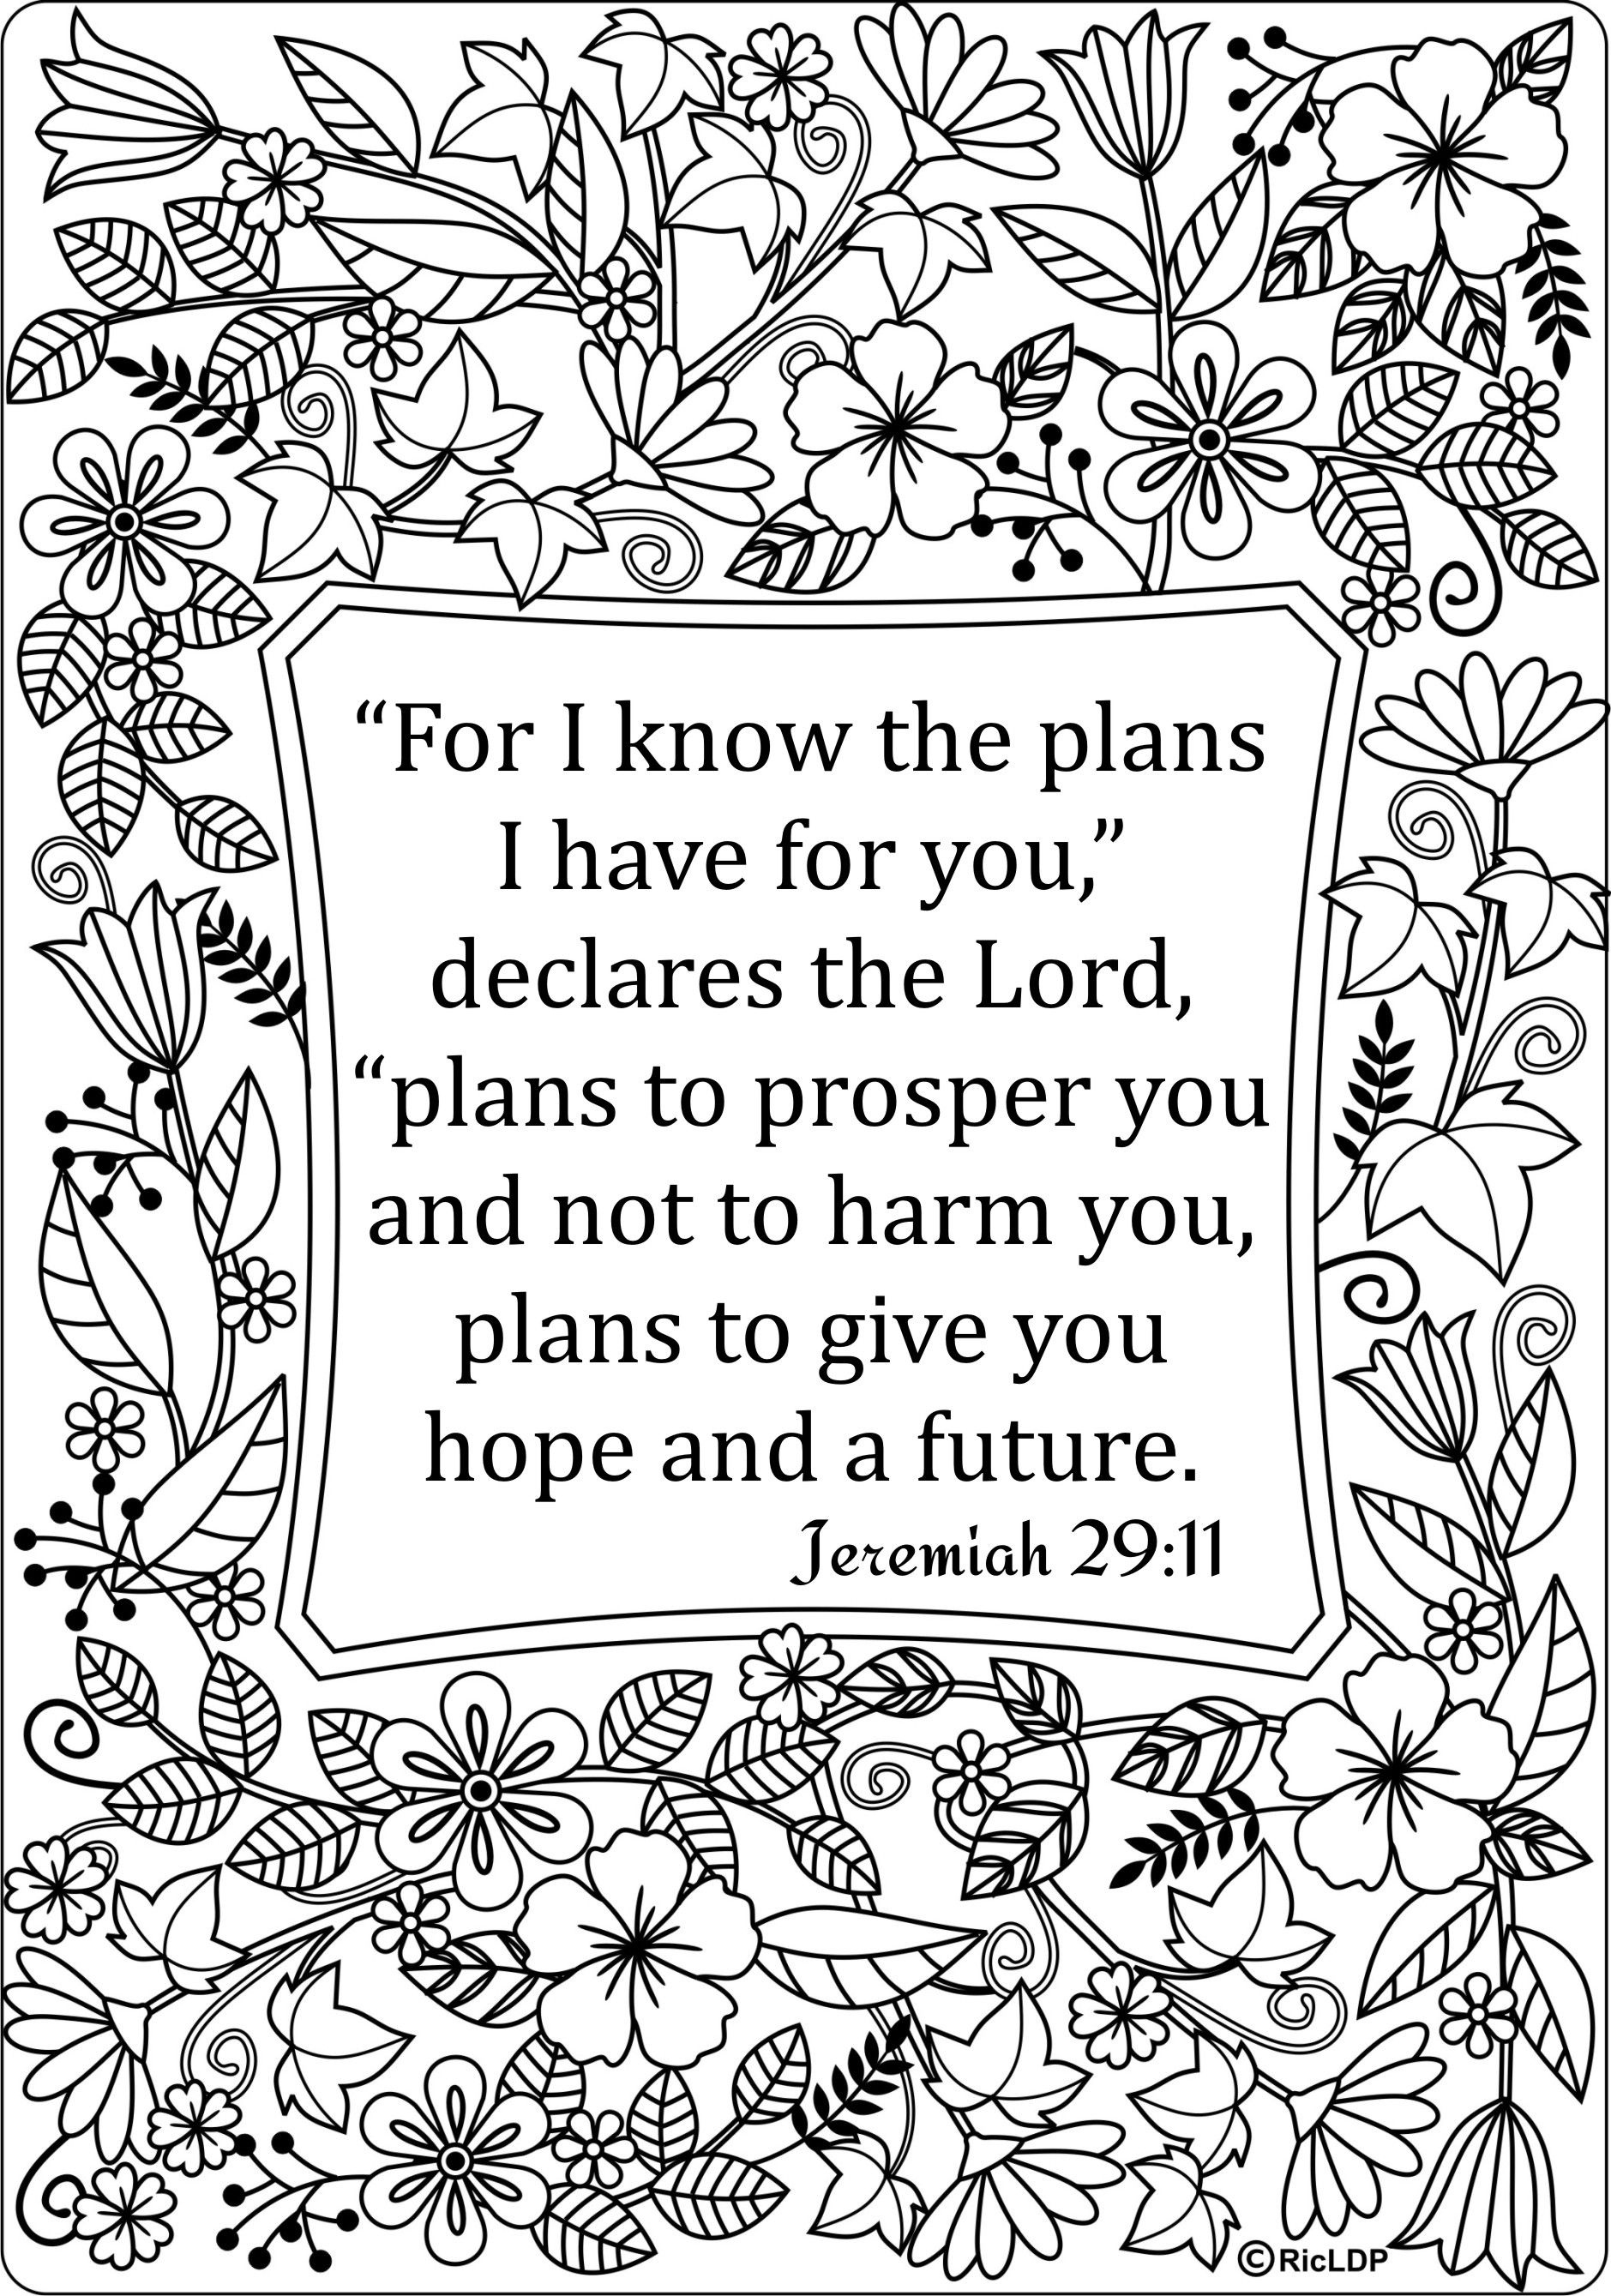 15 Bible Verses Coloring Pages | Coloring Pages | Bible Verse - Free Printable Bible Coloring Pages With Verses